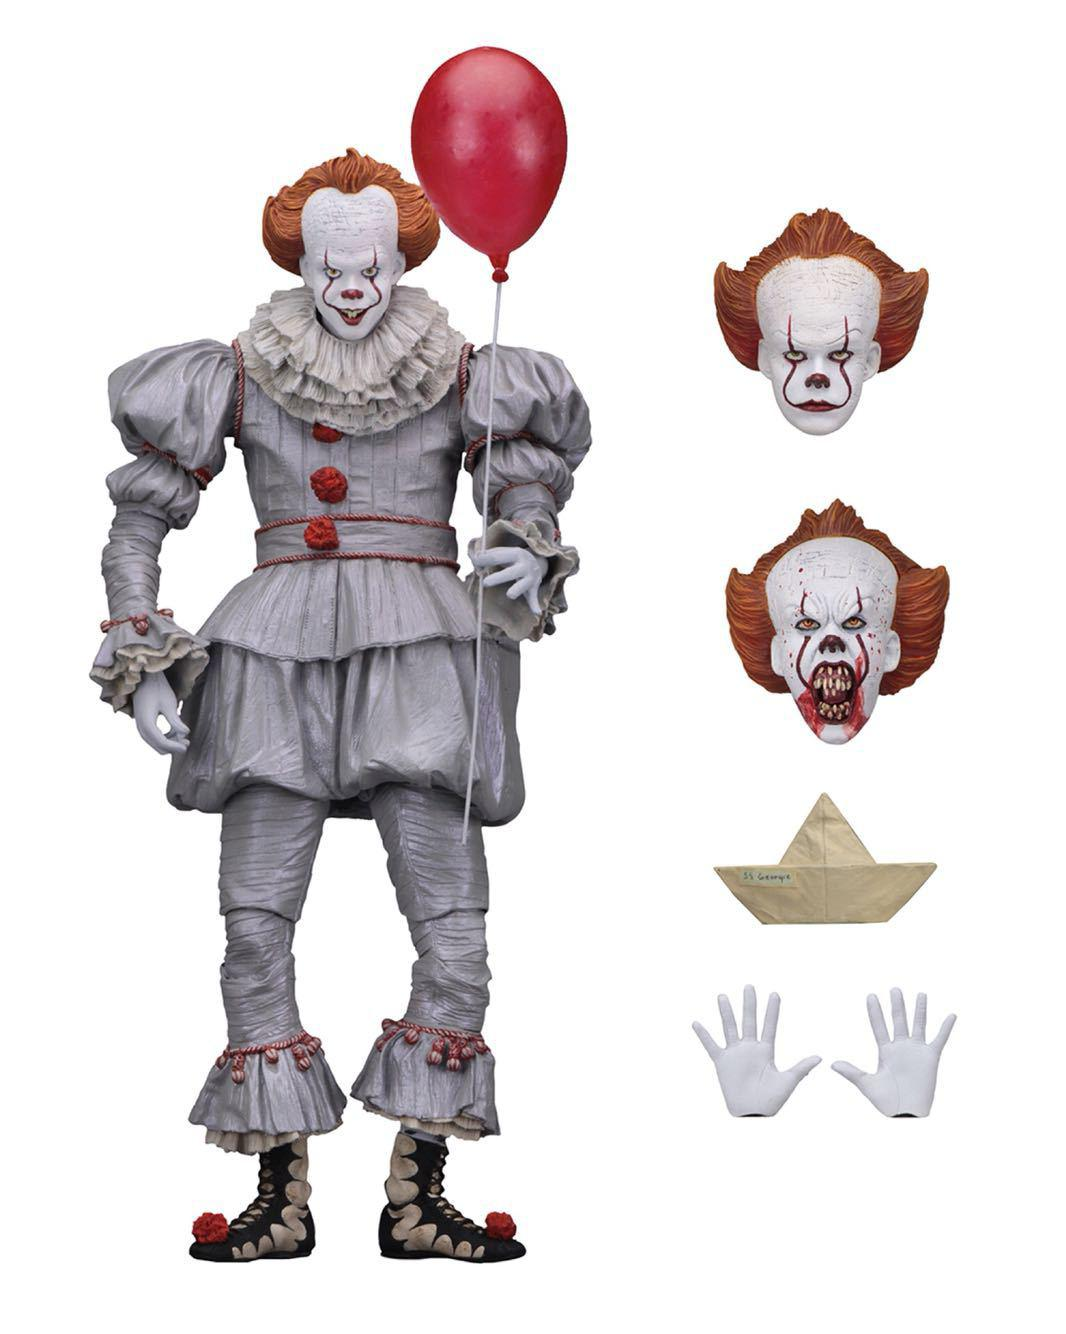 цены на Neca Stephen King's It Pennywise Joker Action Figure Toys Dolls 18cm в интернет-магазинах